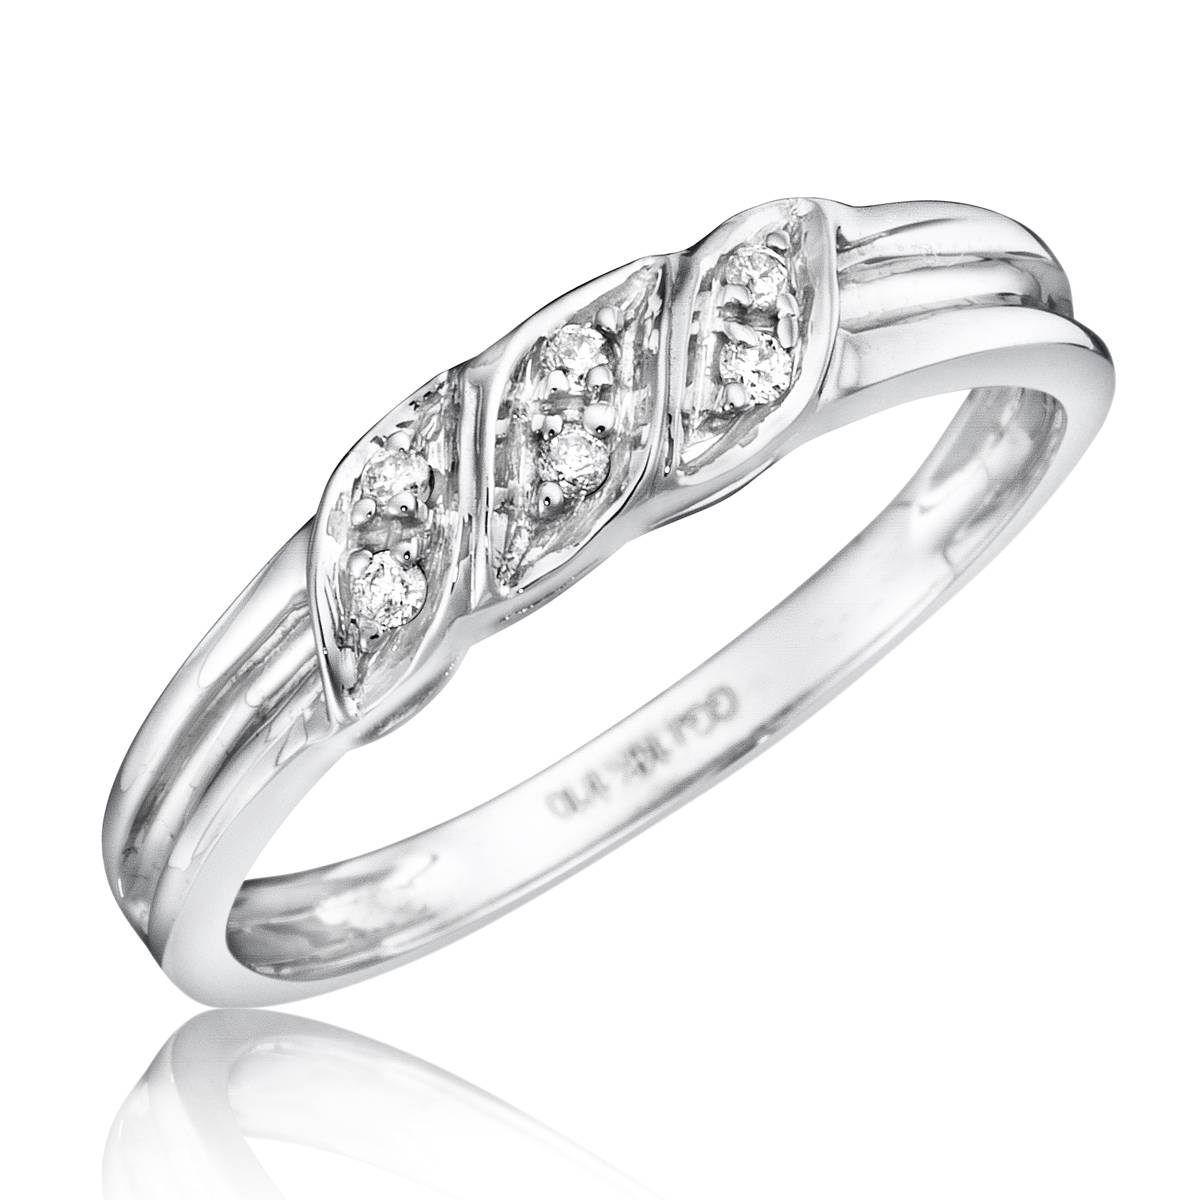 1/15 Carat T.w. Diamond Women's Wedding Ring 10K White Gold Within Womens Wedding Rings (Gallery 11 of 15)